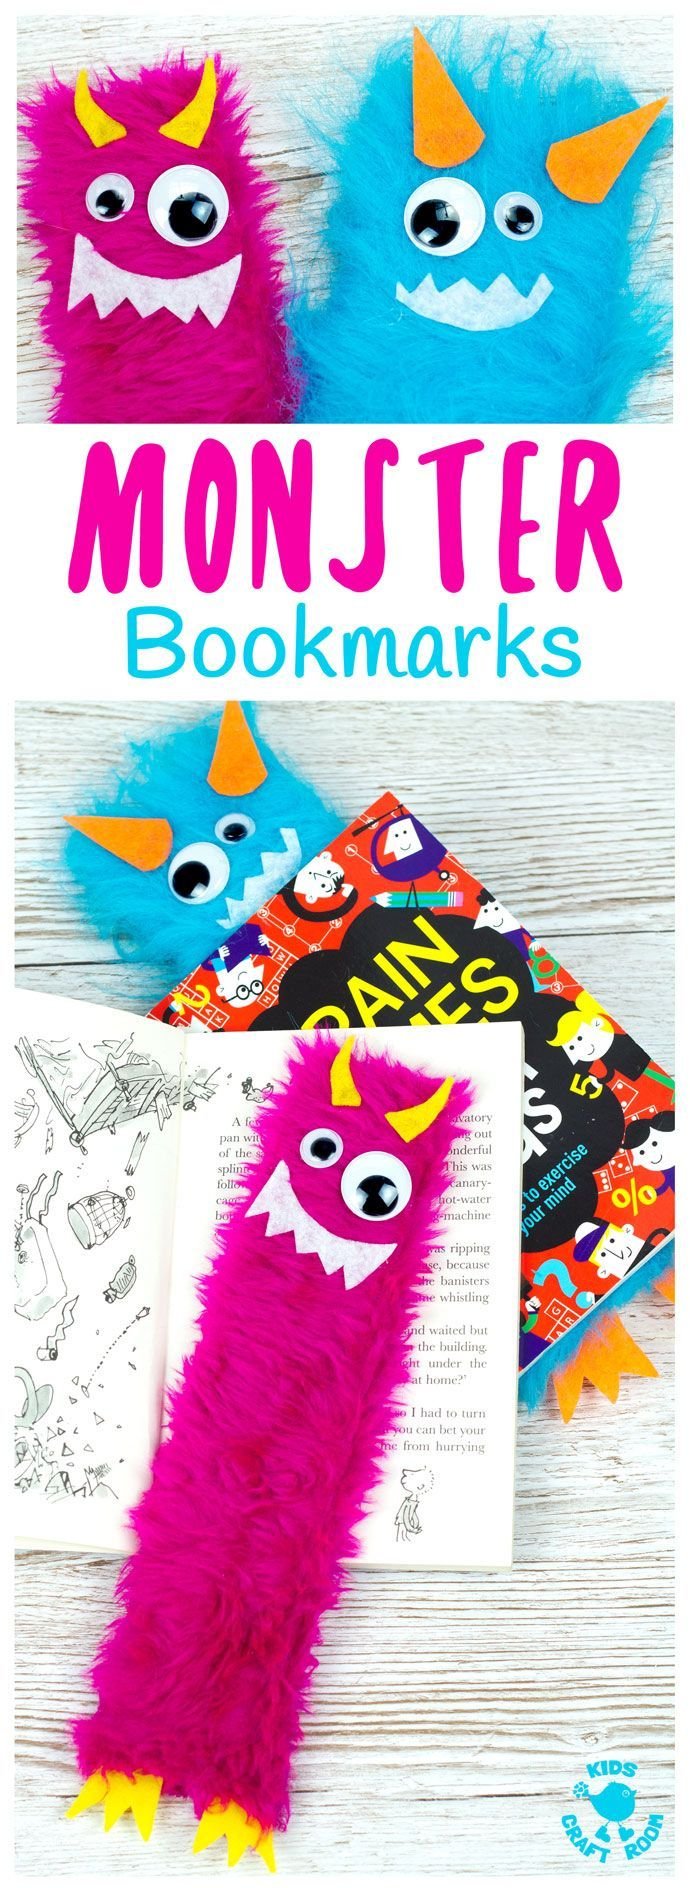 Adorable Monster Bookmark Craft for your little monsters! Great for back to school.  A perfect monster craft to bring fun and excitement to your children's reading whatever their age. Reading is monstrously good fun and these furry monsters are great for snuggling up to on your reading adventures and they look after your page when you've finished too!  #backtoschool #bookmarks #kidscrafts #monster #reading #craftsforkids #bookmarkcrafts #bookmark #readingactivities #kidsactivities #kidscraftroom